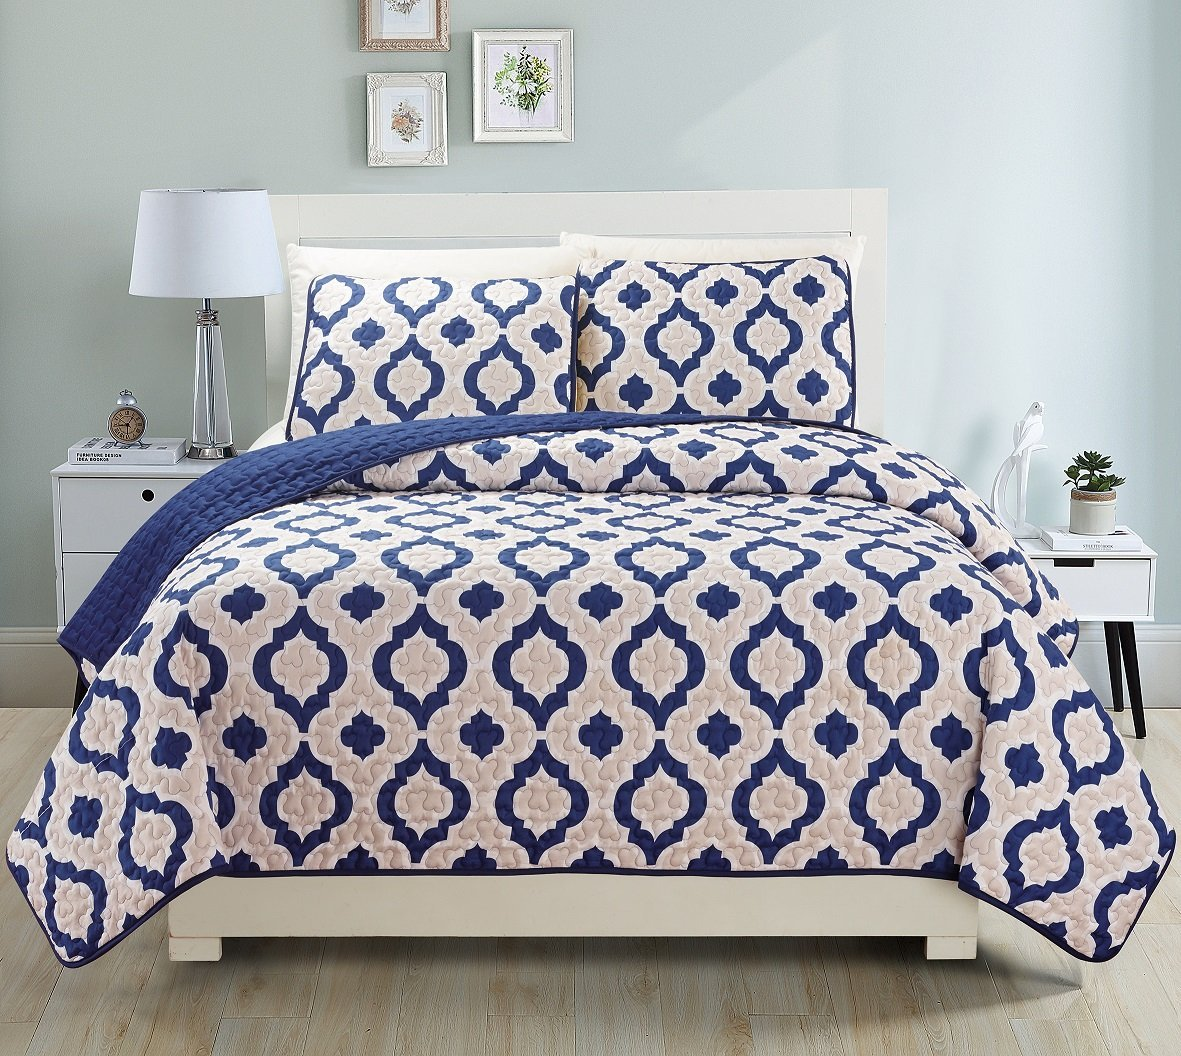 Fancy Collection 3pc Bedspread Bed Cover Reversible Beige